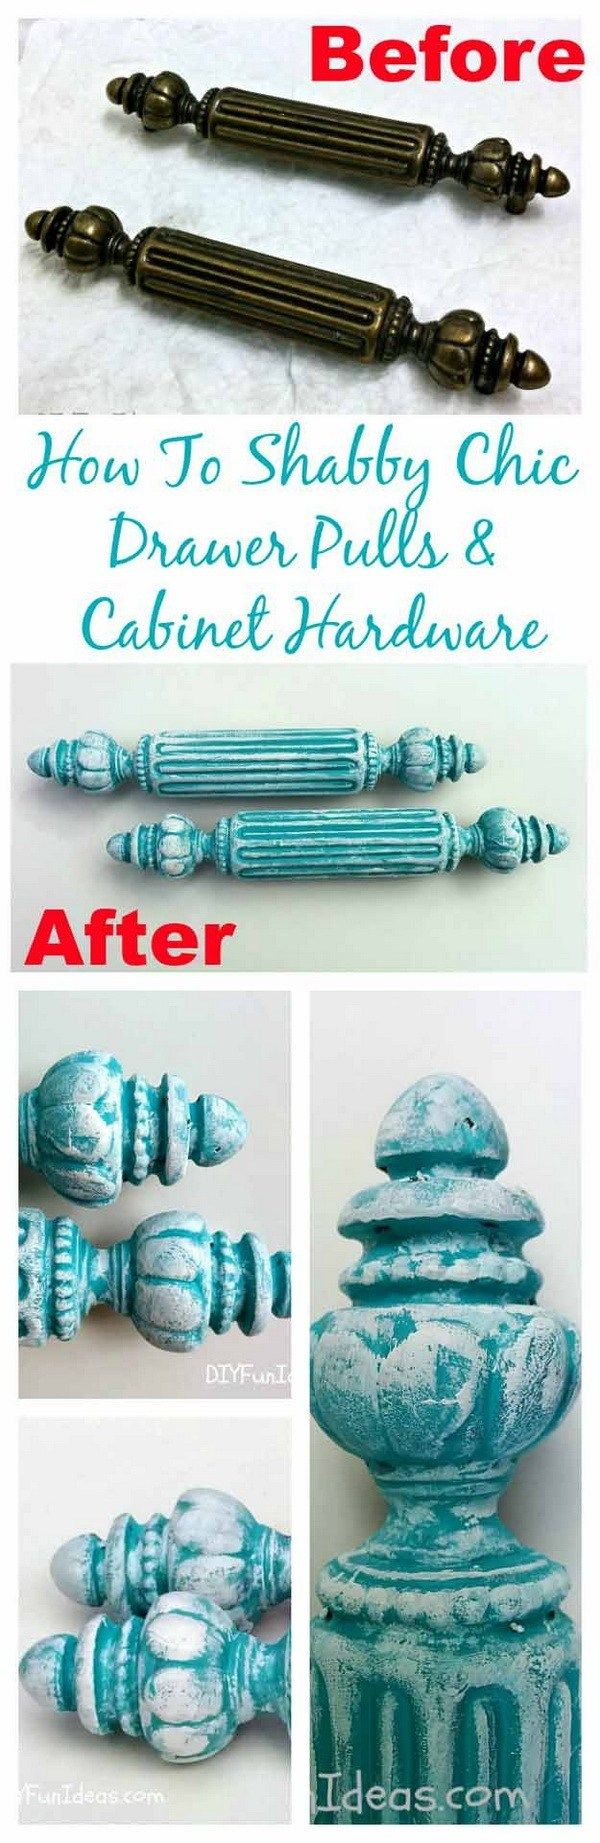 18 Awesome DIY Shabby Chic Furniture Makeover Ideas – Susan Alexander